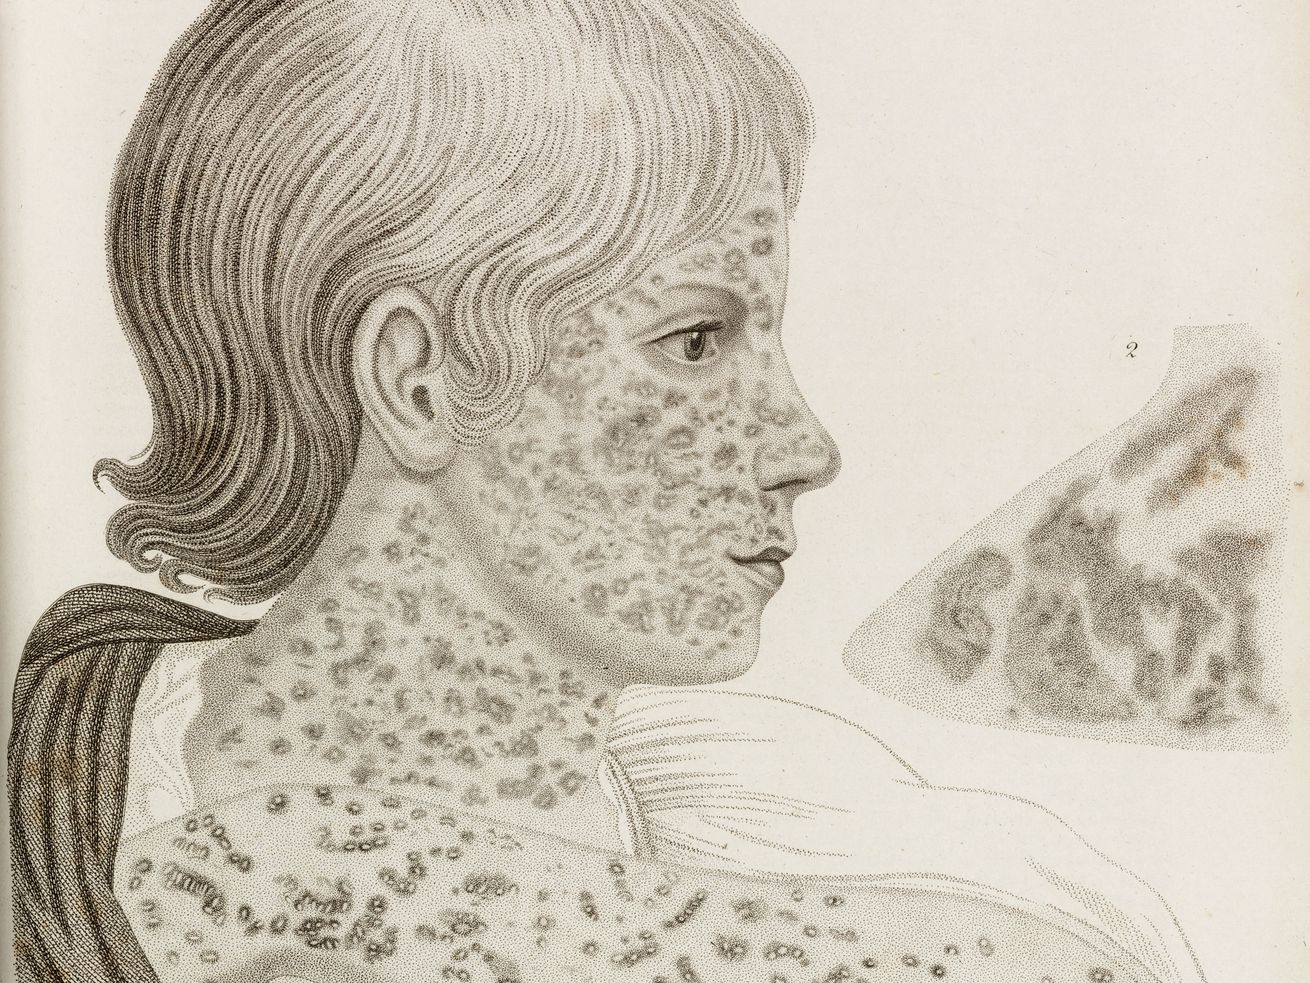 A 19th-century depiction of measles.